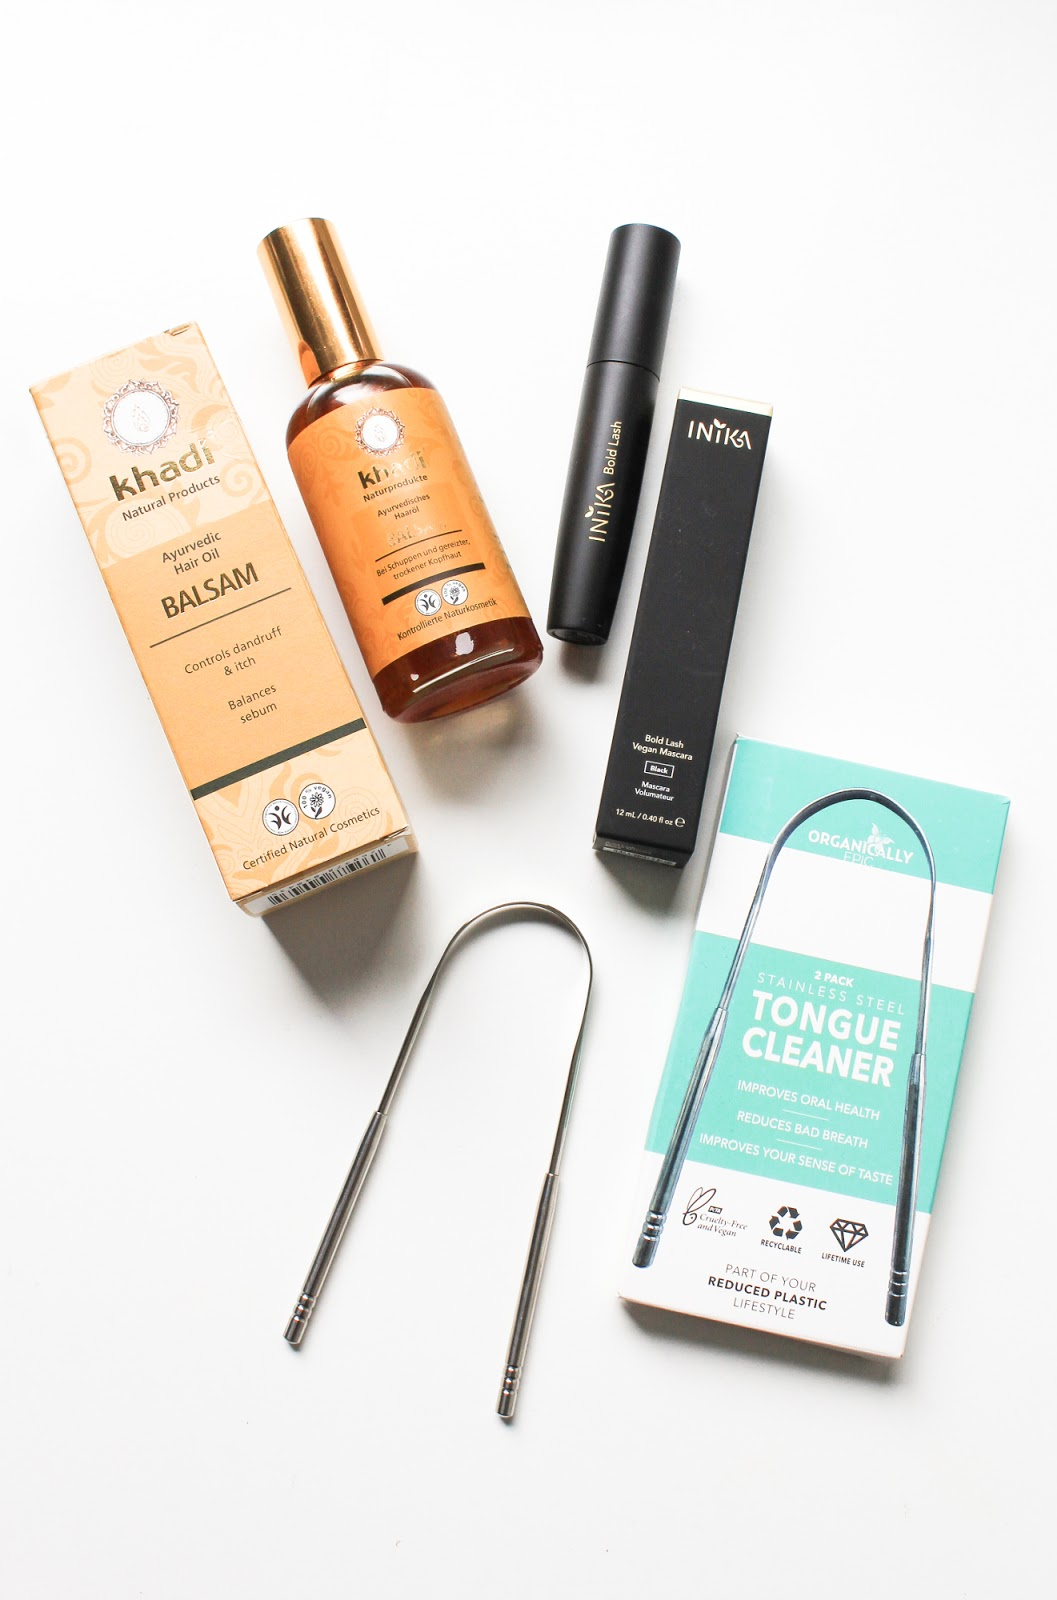 Khadi Balsam Hair Oil, Inika Bold Lash Mascara, Organically Epic Tongue Cleaner. LoveLula